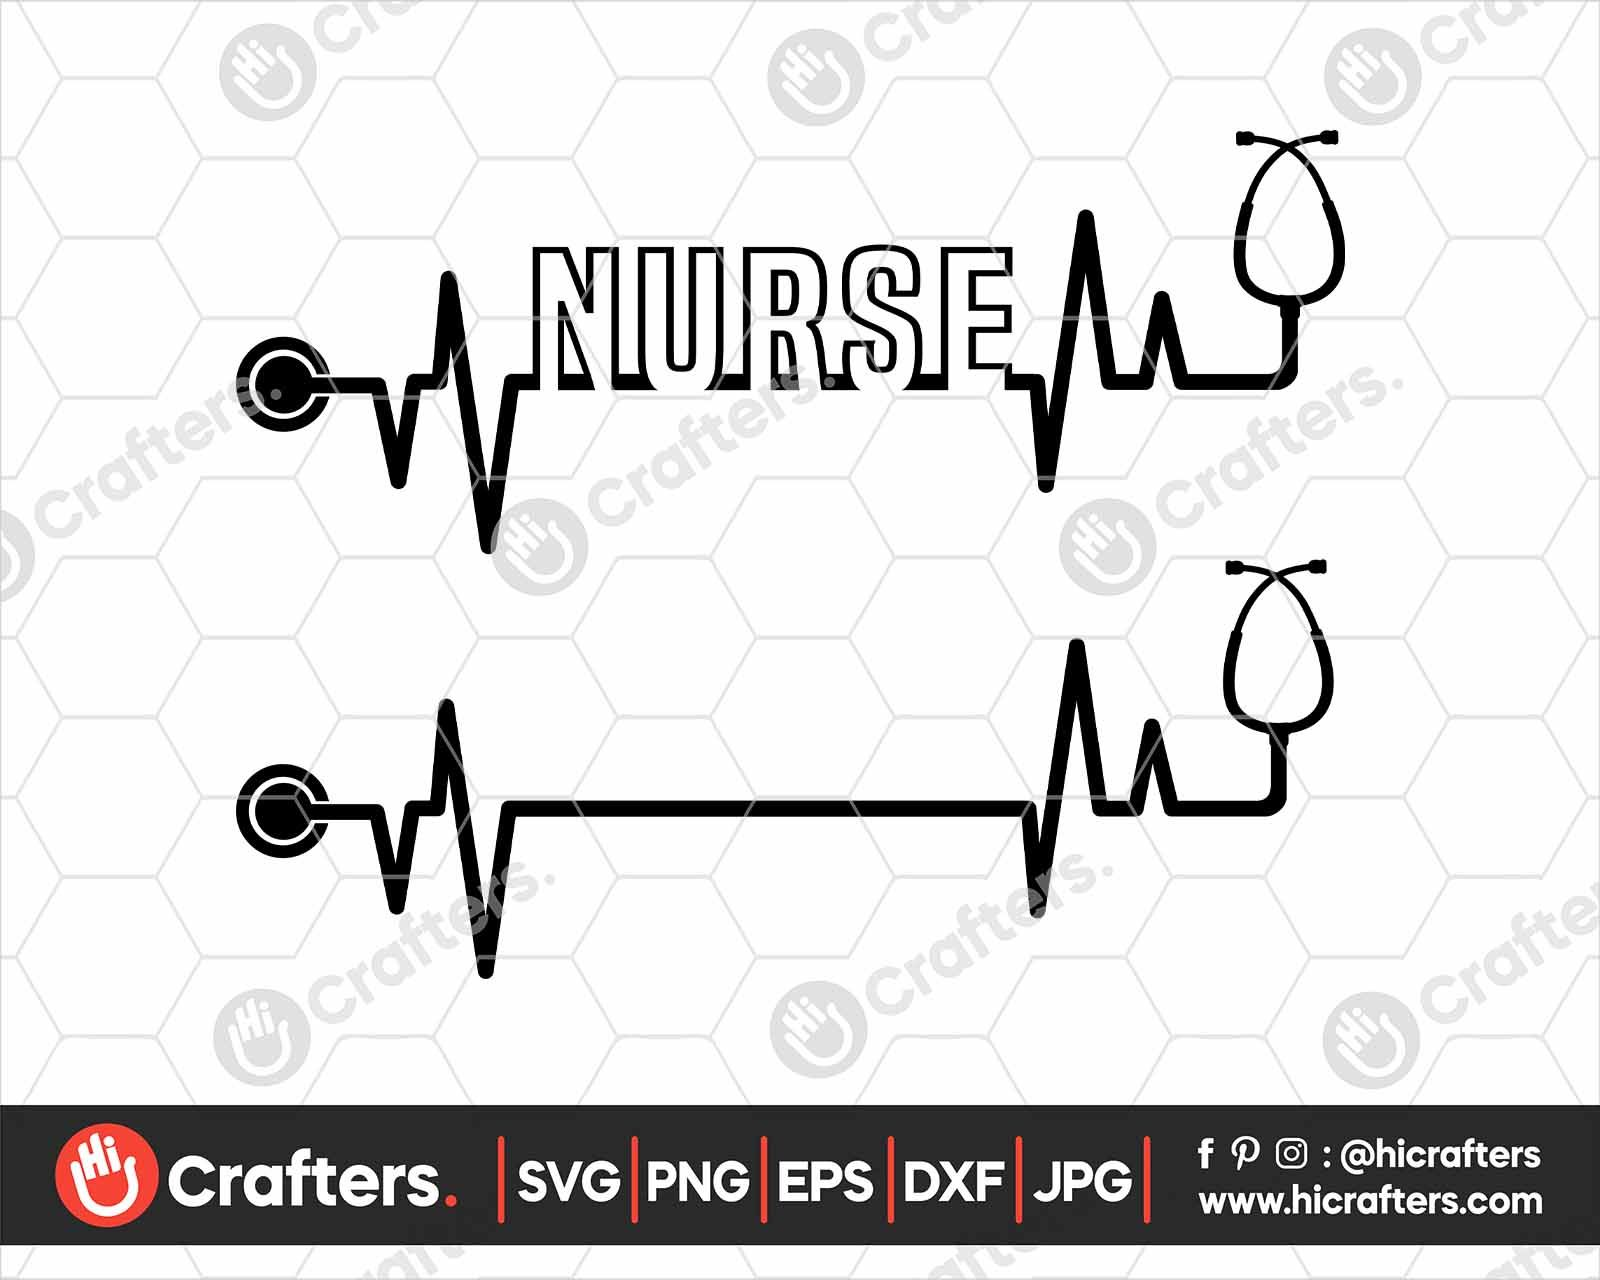 Pin on Health Workers SVG Nurses SVG Files